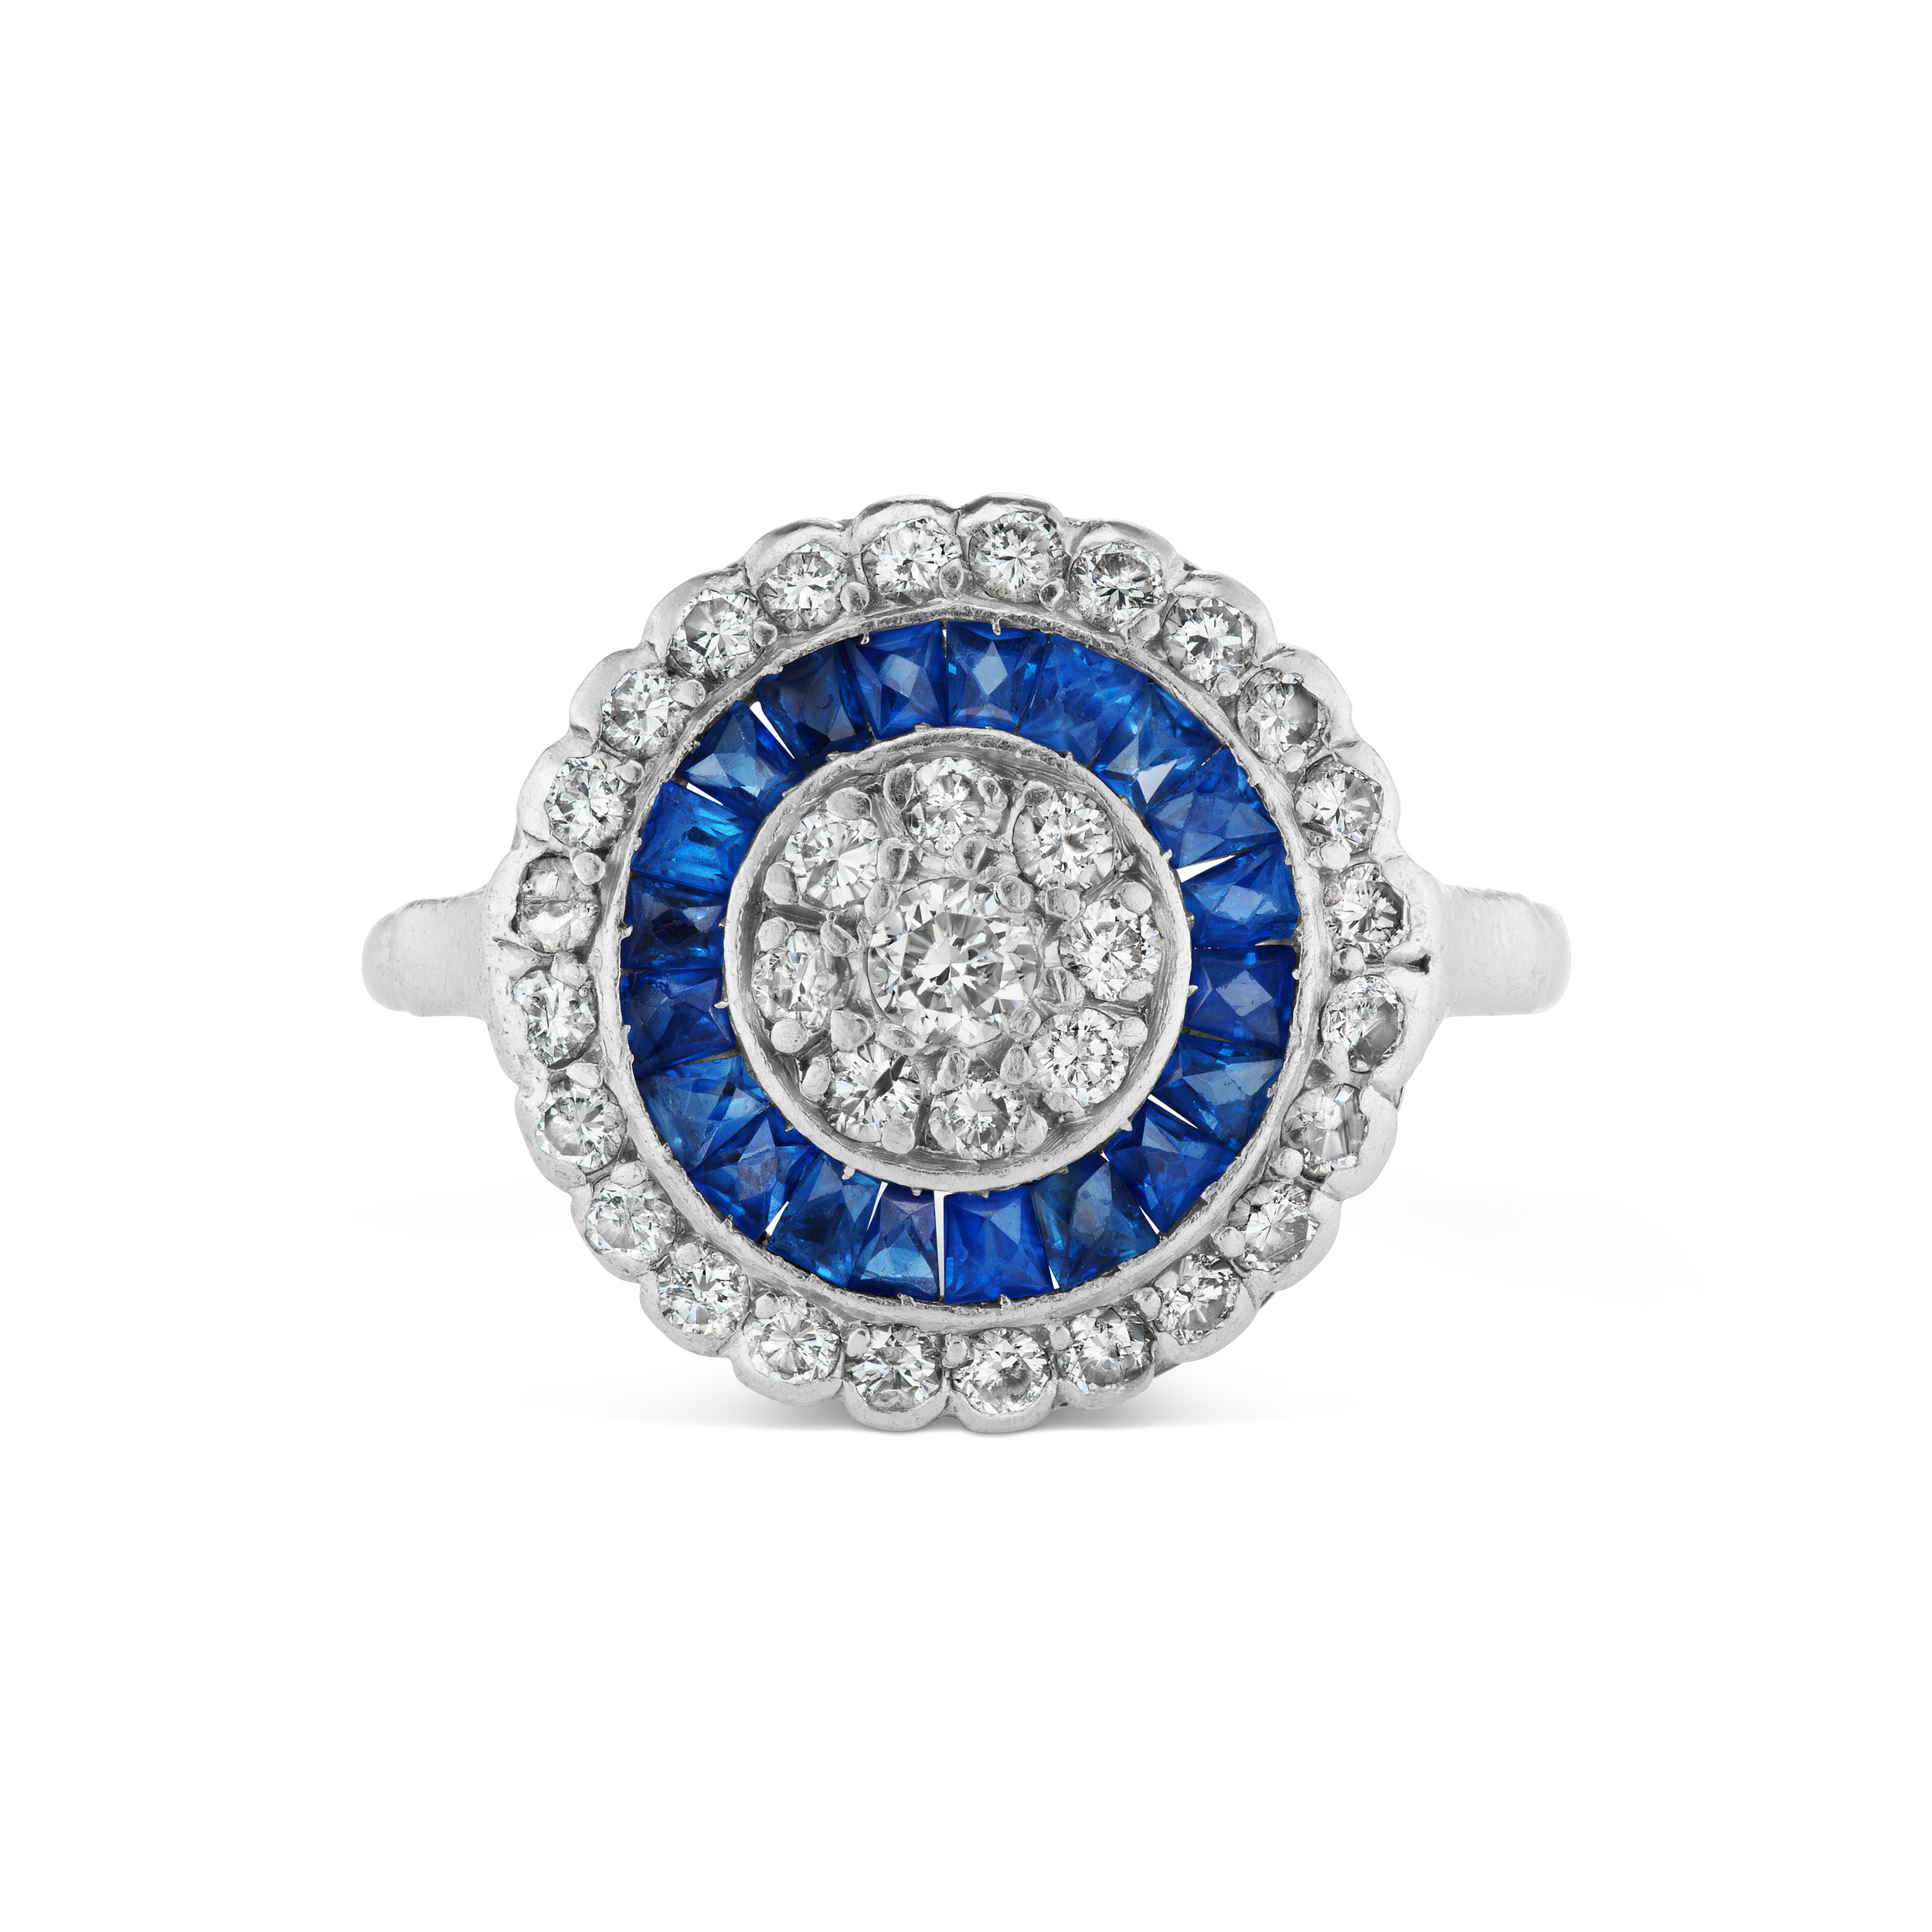 Antique-inspired diamond and sapphire ring.